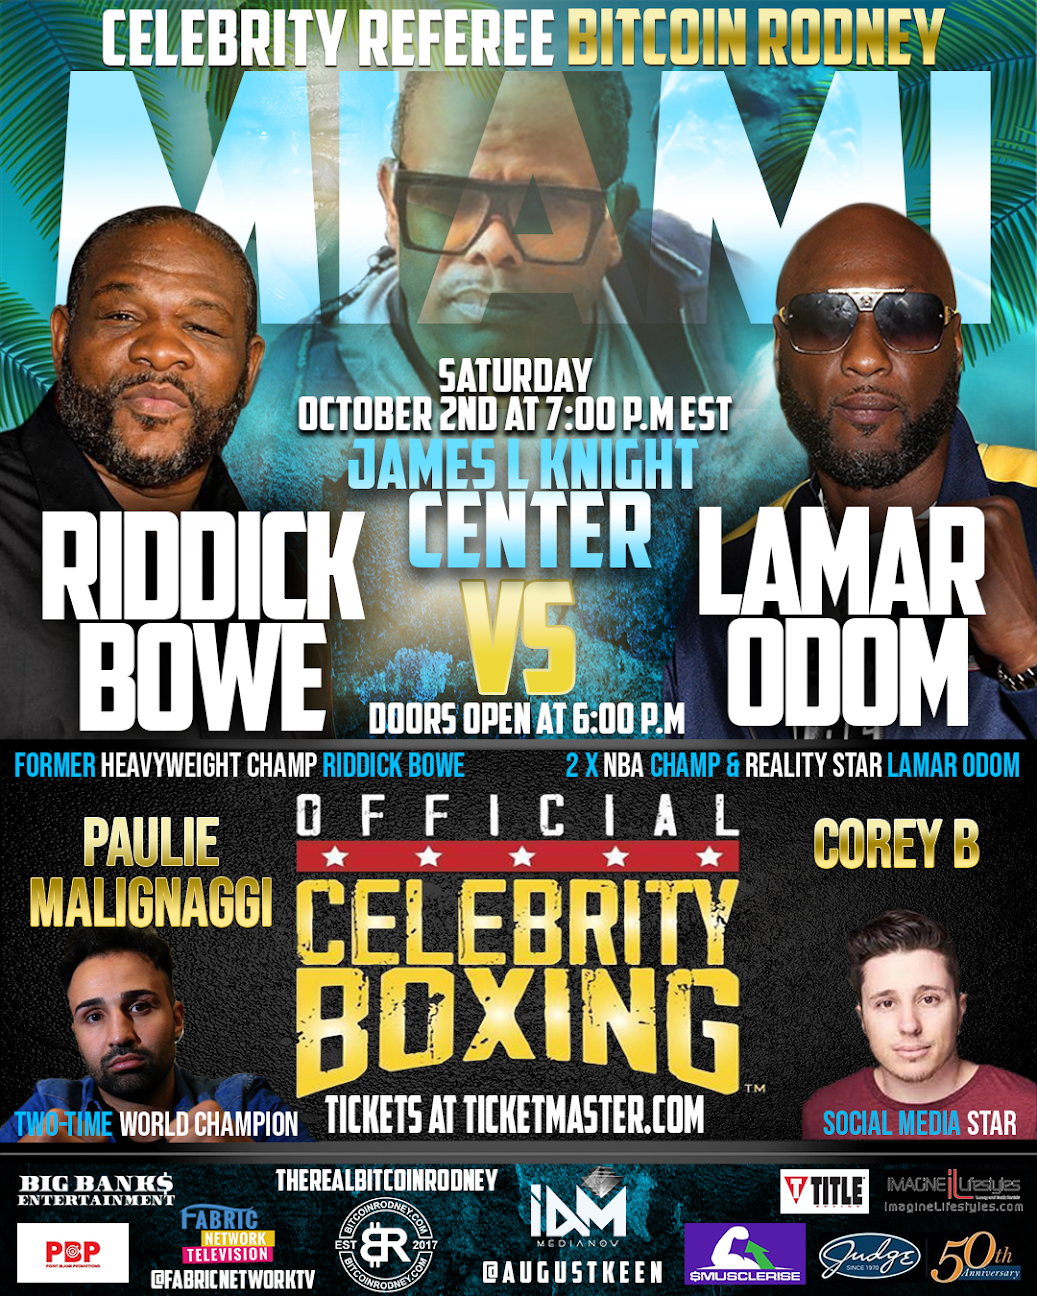 Celebrity Boxing to Hit Miami Aug. 11 for Press Conference of Recent Champion, 2x NBA Champ & Reality Star Lamar Odom vs Former Heavy Weight Boxing Champ, Riddick Bowe